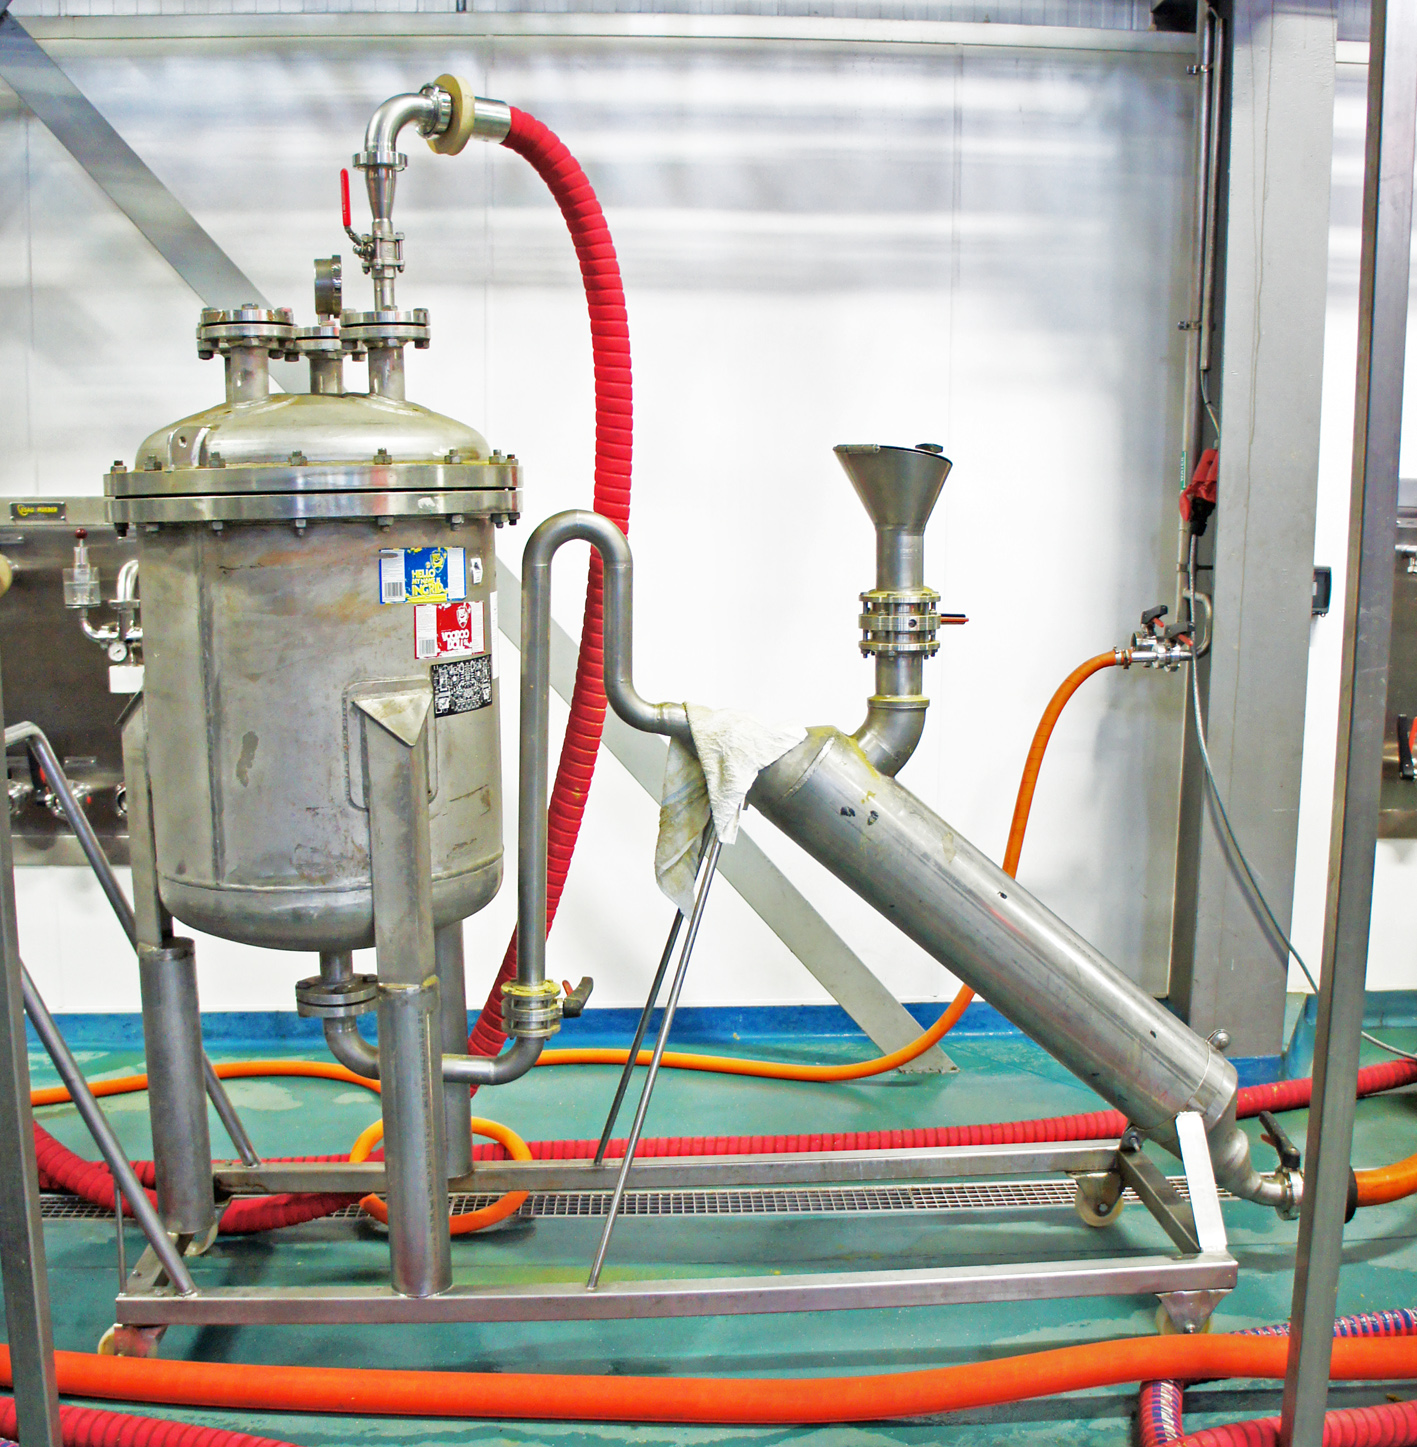 The CO2-powered hop cannon, which fires 20kg of dry hops at a time into the beer conditioning tanks